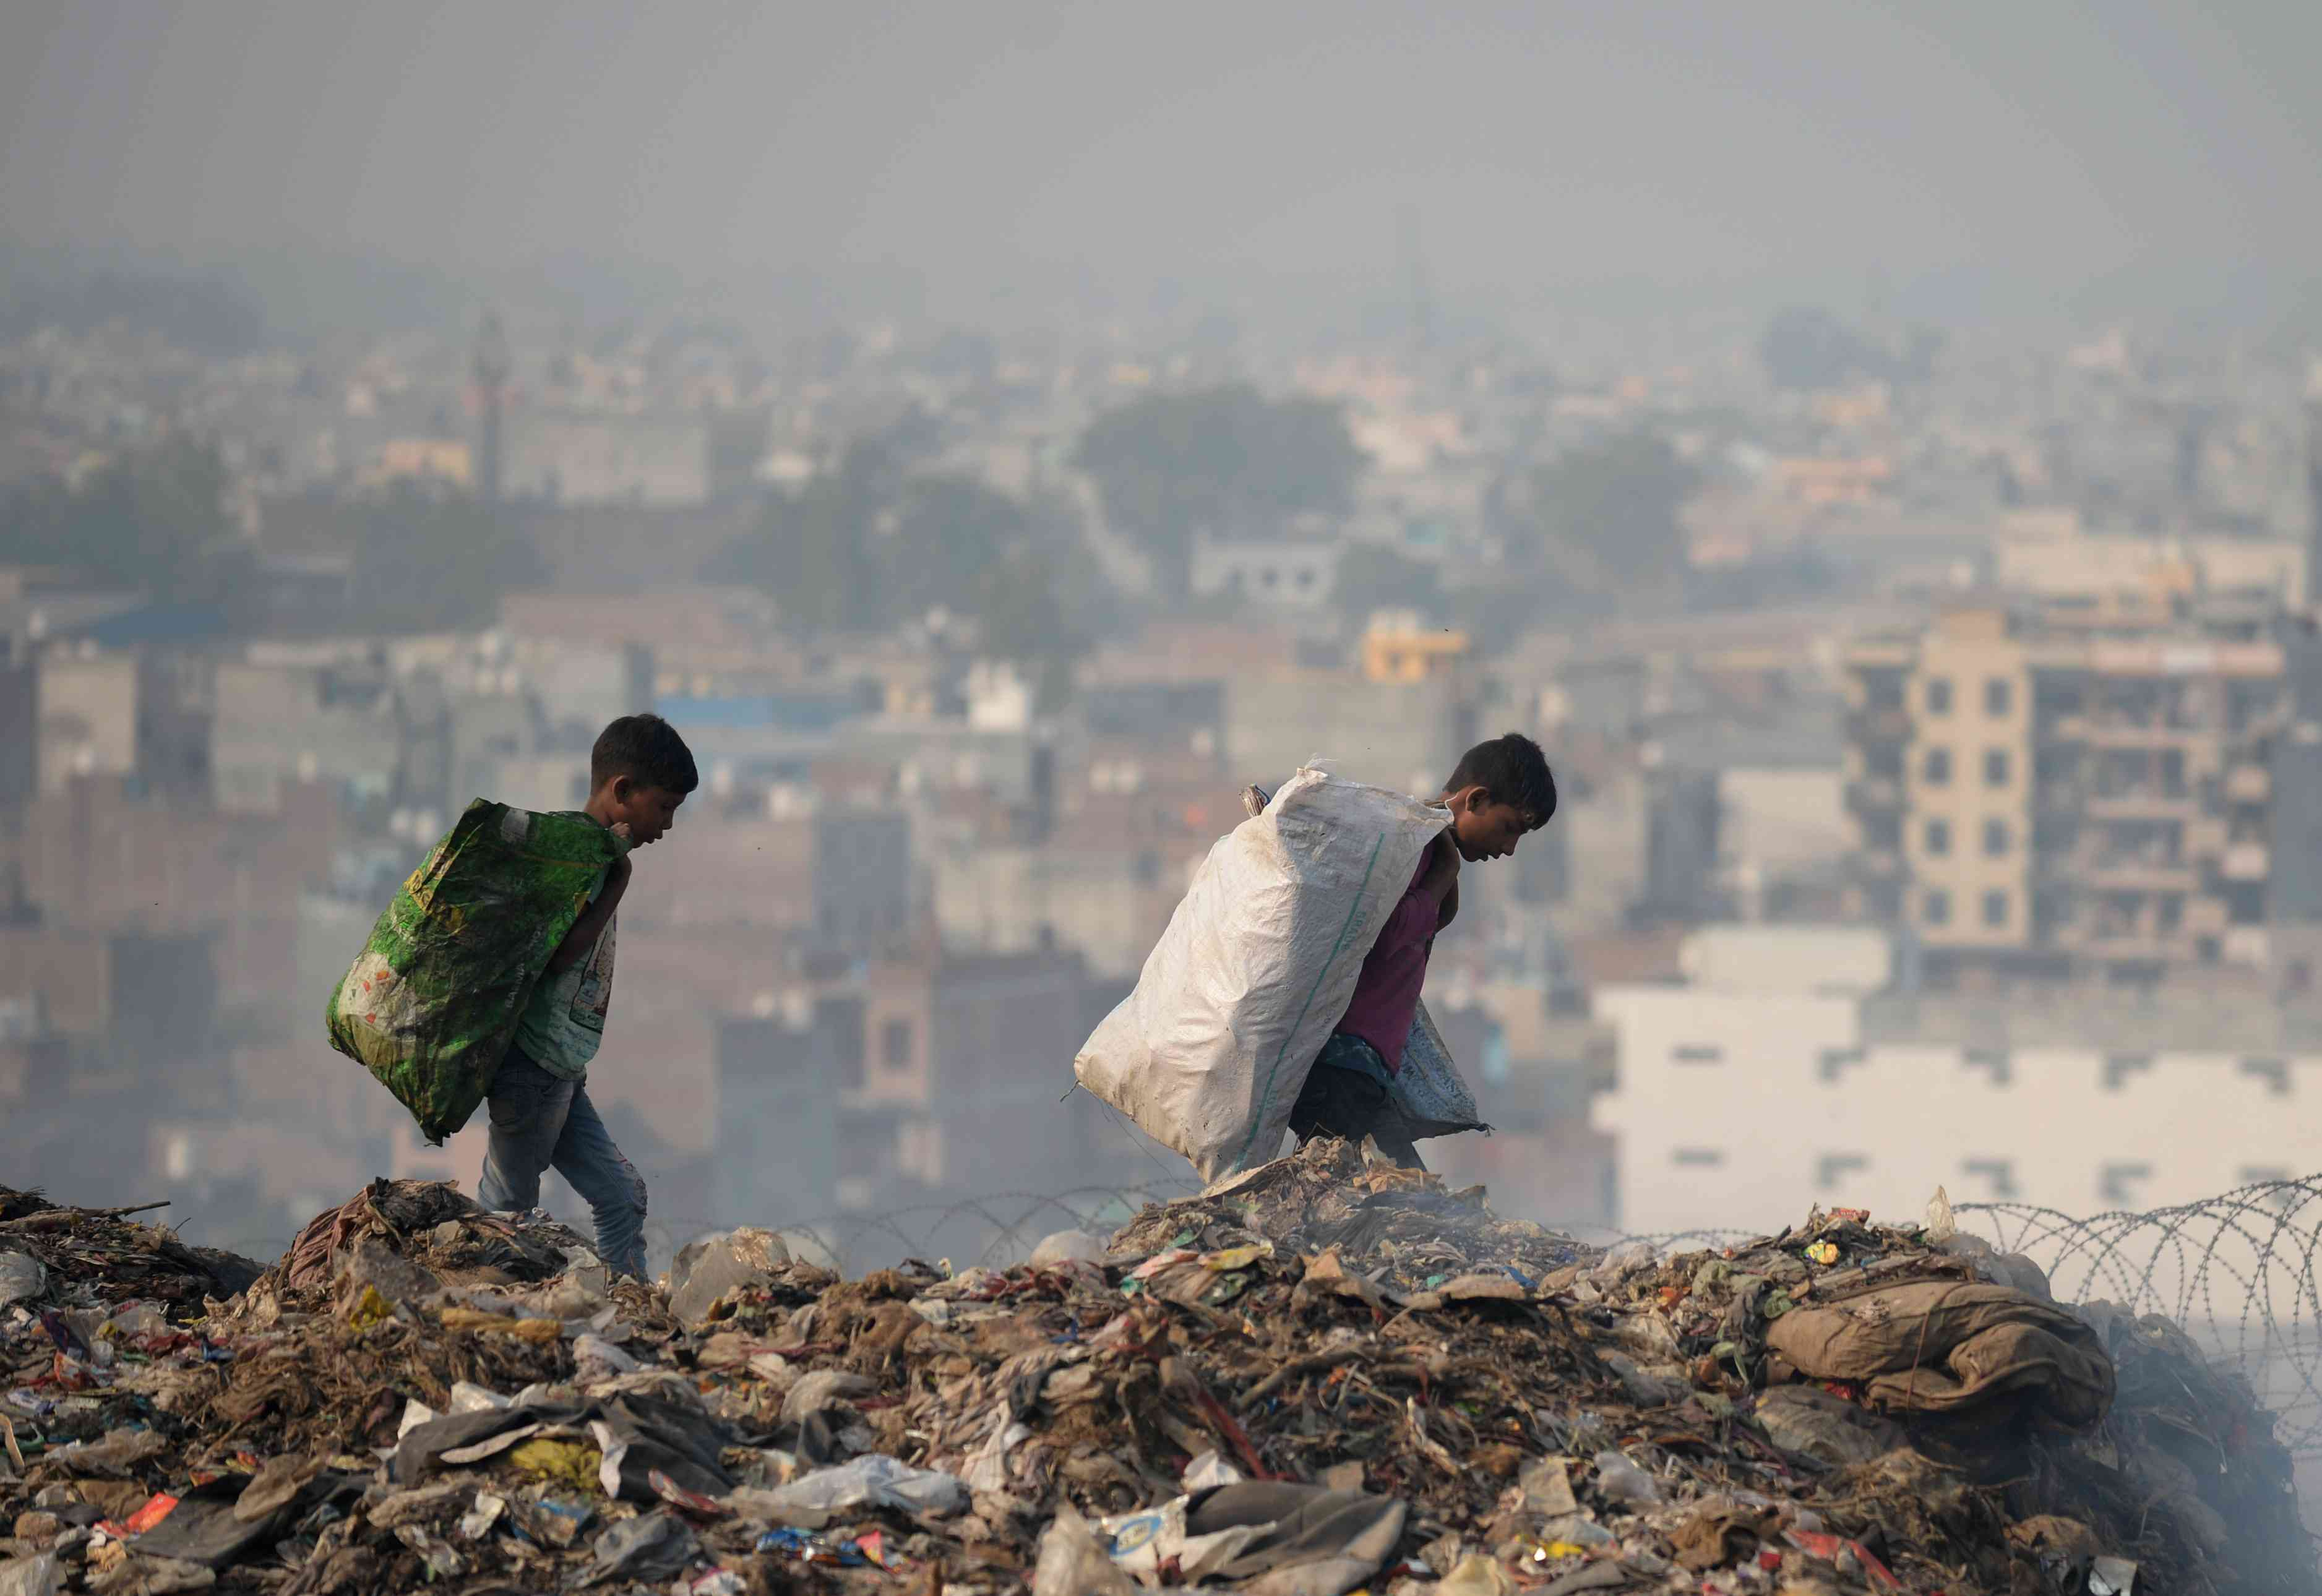 Ragpickers carry bags with usable items collected from a garbage dump at the Bhalswa landfill site in New Delhi on October 29. (Photo credit: Sajjad Hussain/AFP).